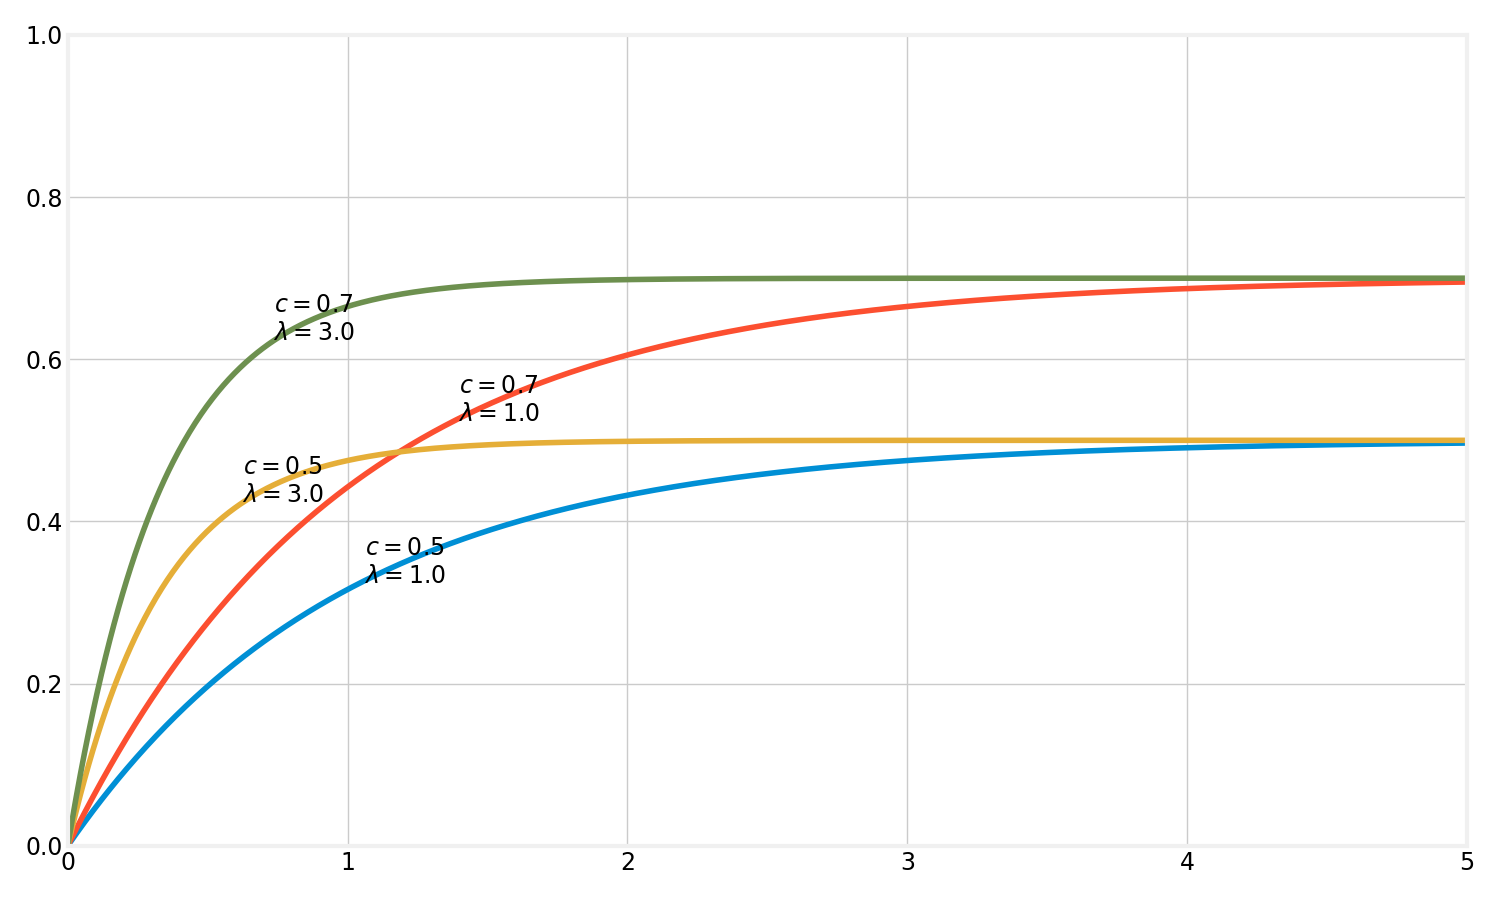 exponential curves